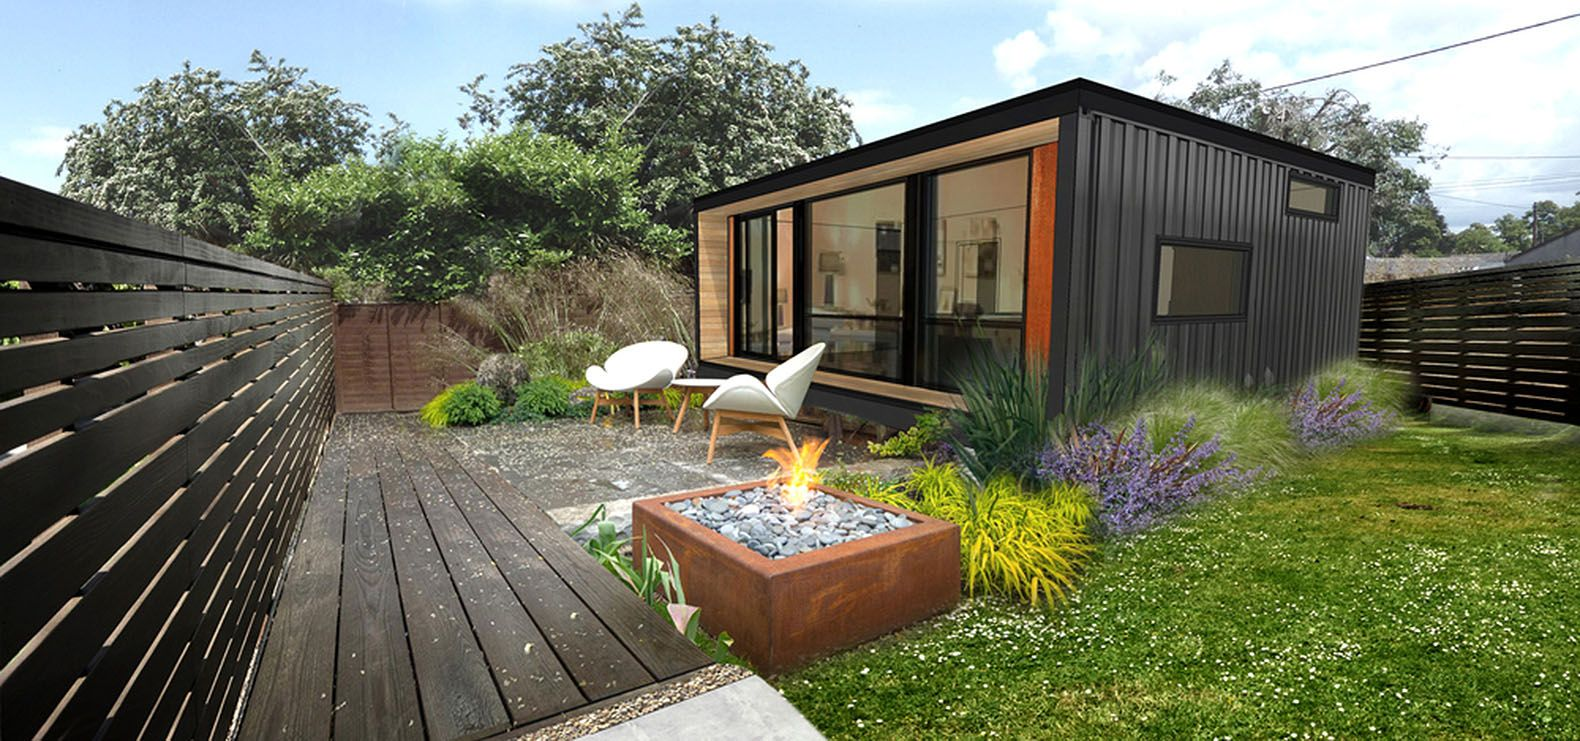 You Can Order HonoMobou0027s Prefab Shipping Container Homes Online